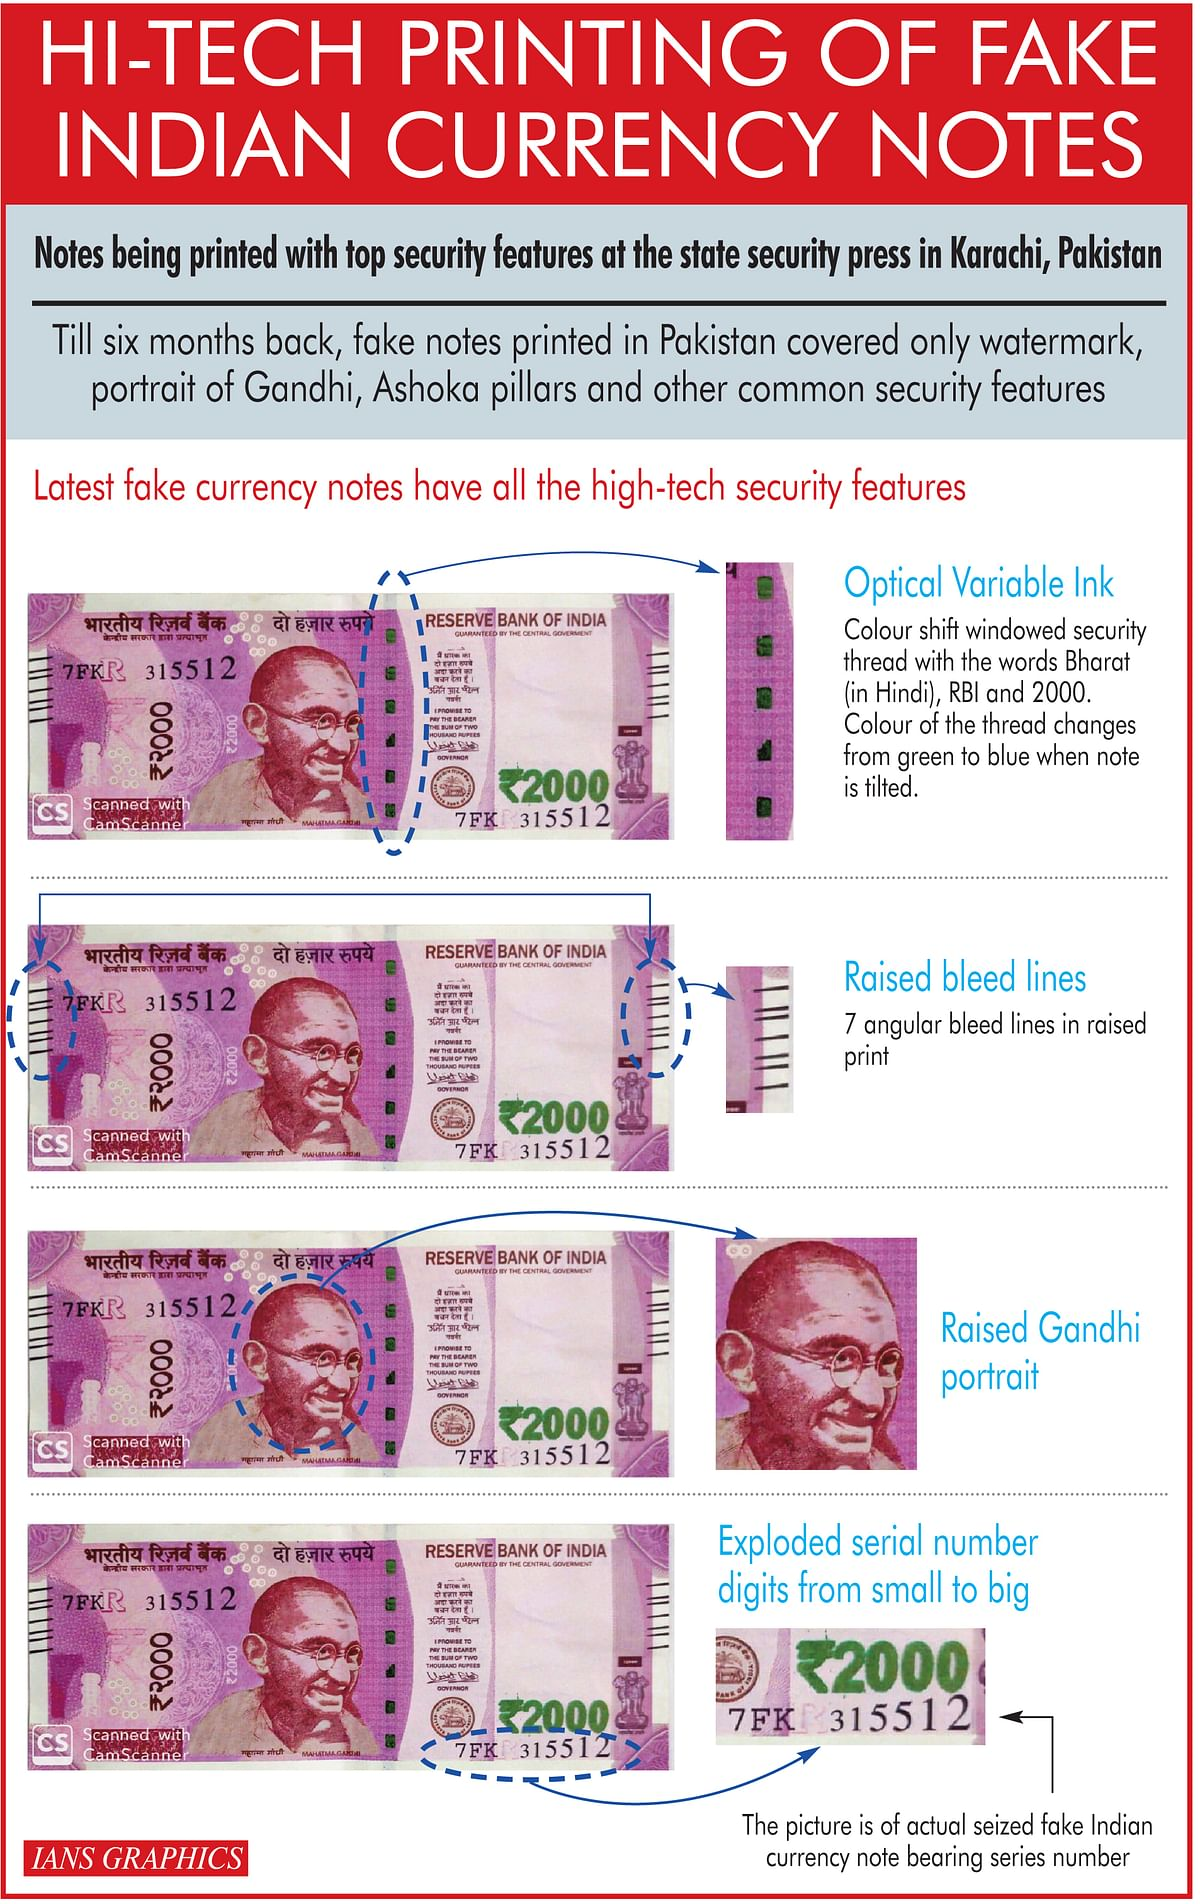 Hi-tech printing of fake Indian currency notes